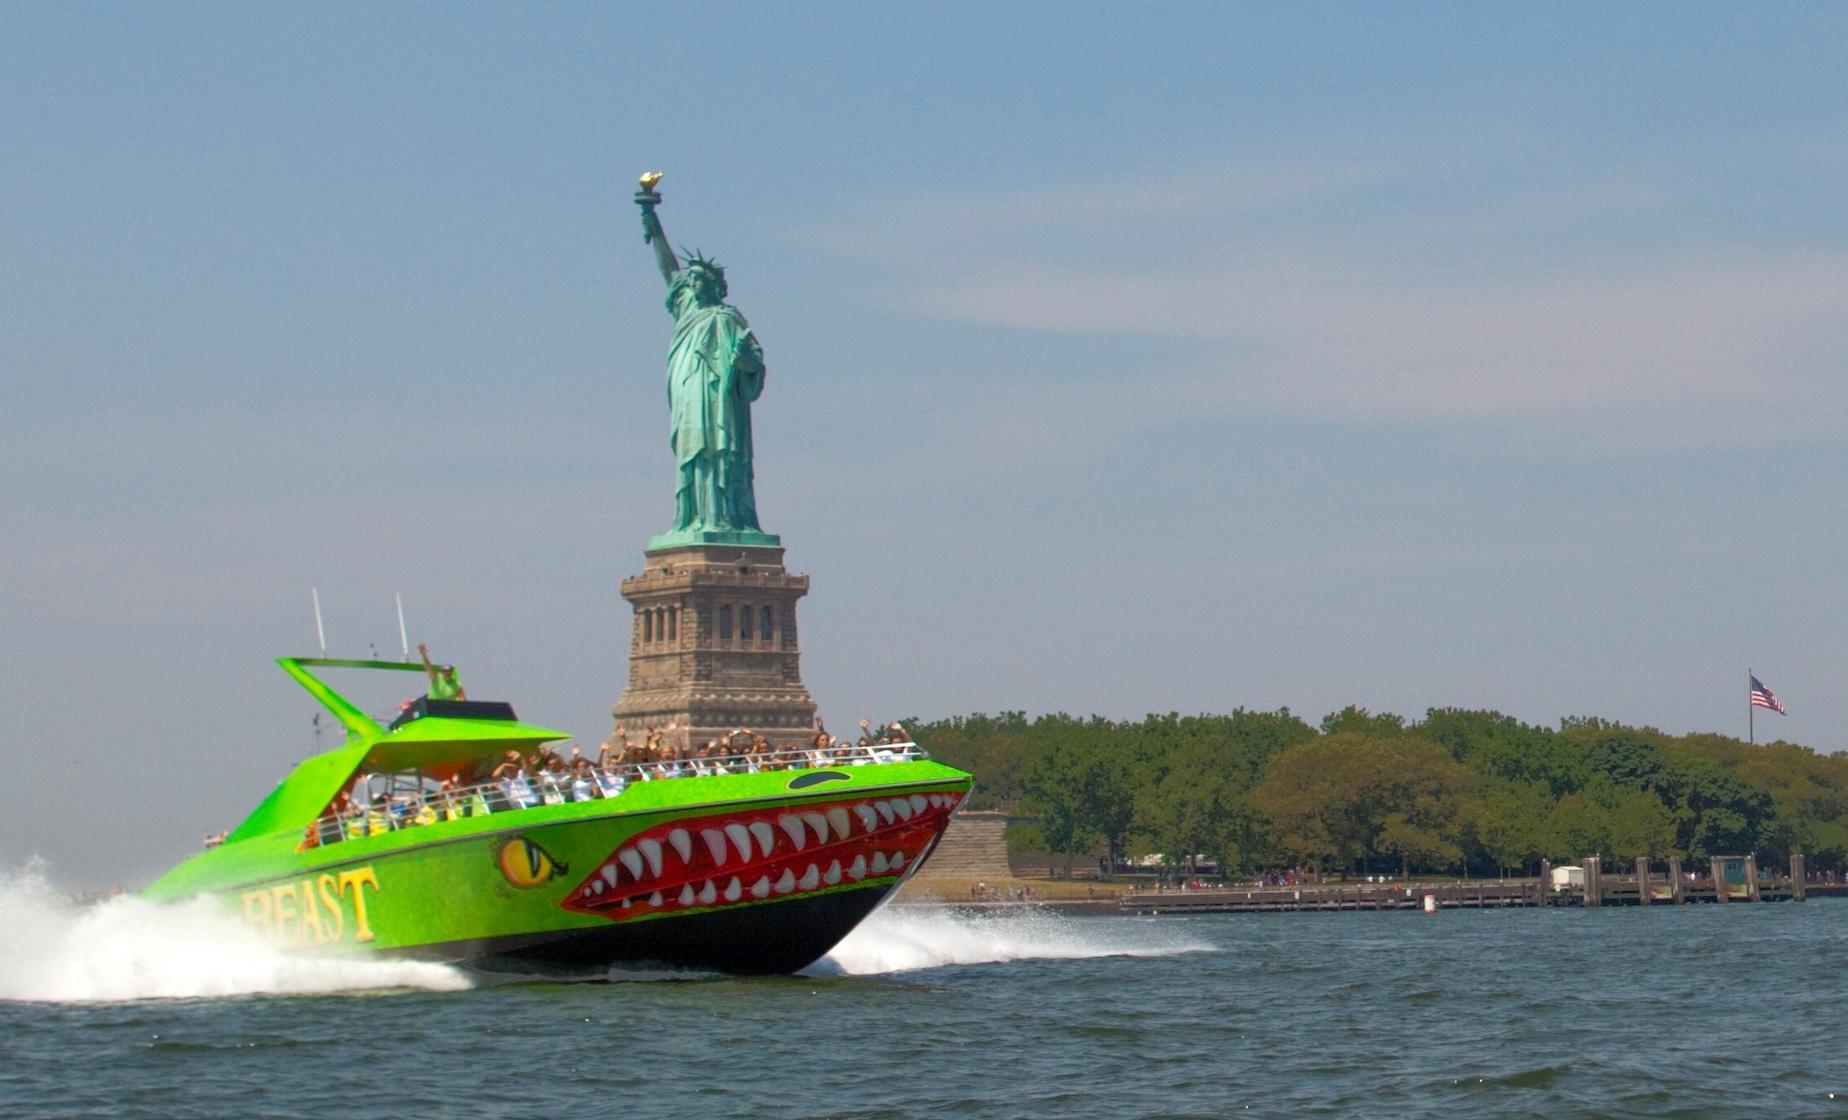 New York Beast Speedboat Ride to Statue of Liberty (Hoboken Terminal, Ellis Island)